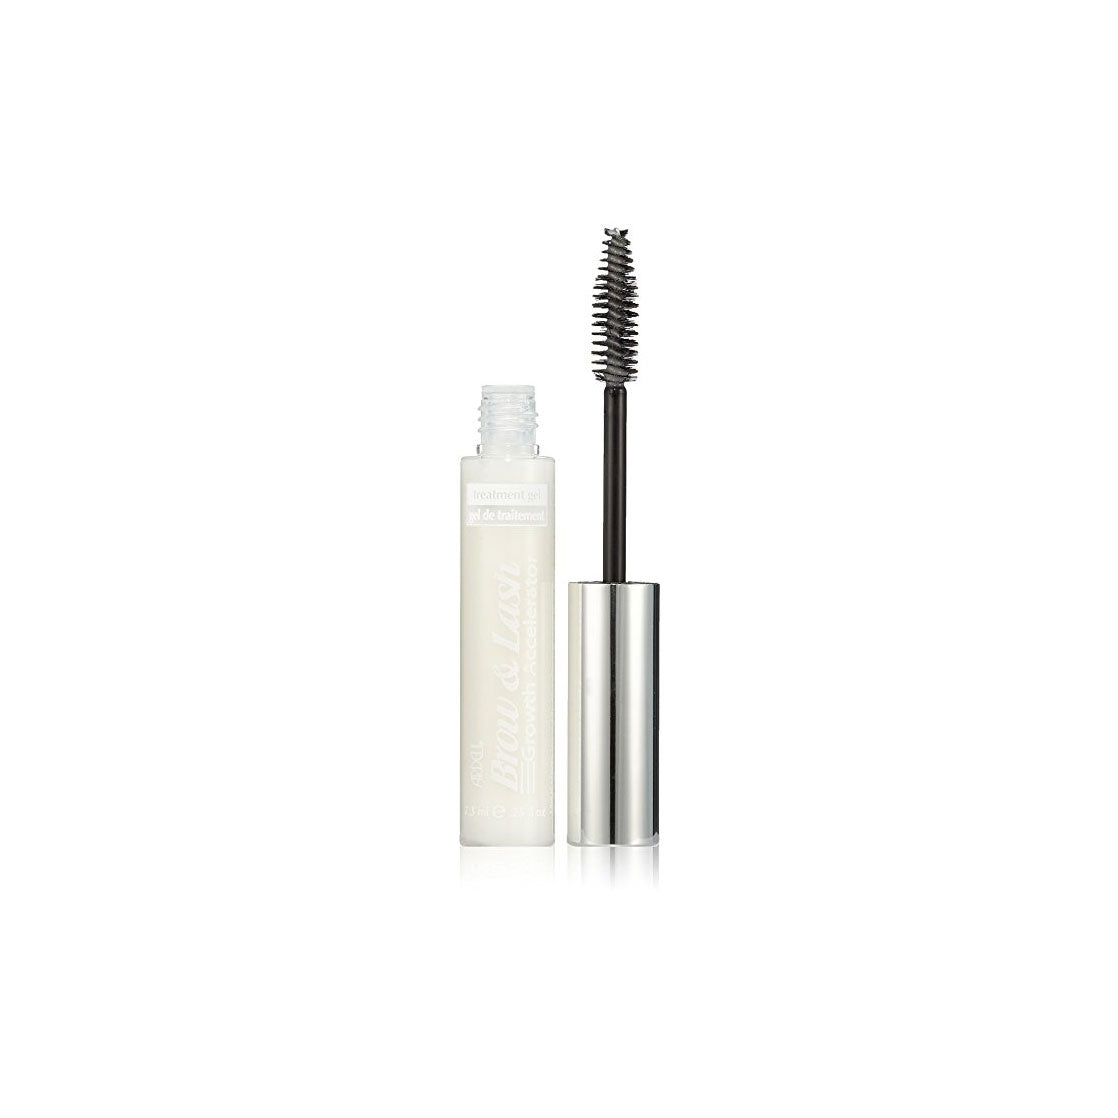 Ardell - Brow & Lash Growth Accelerator